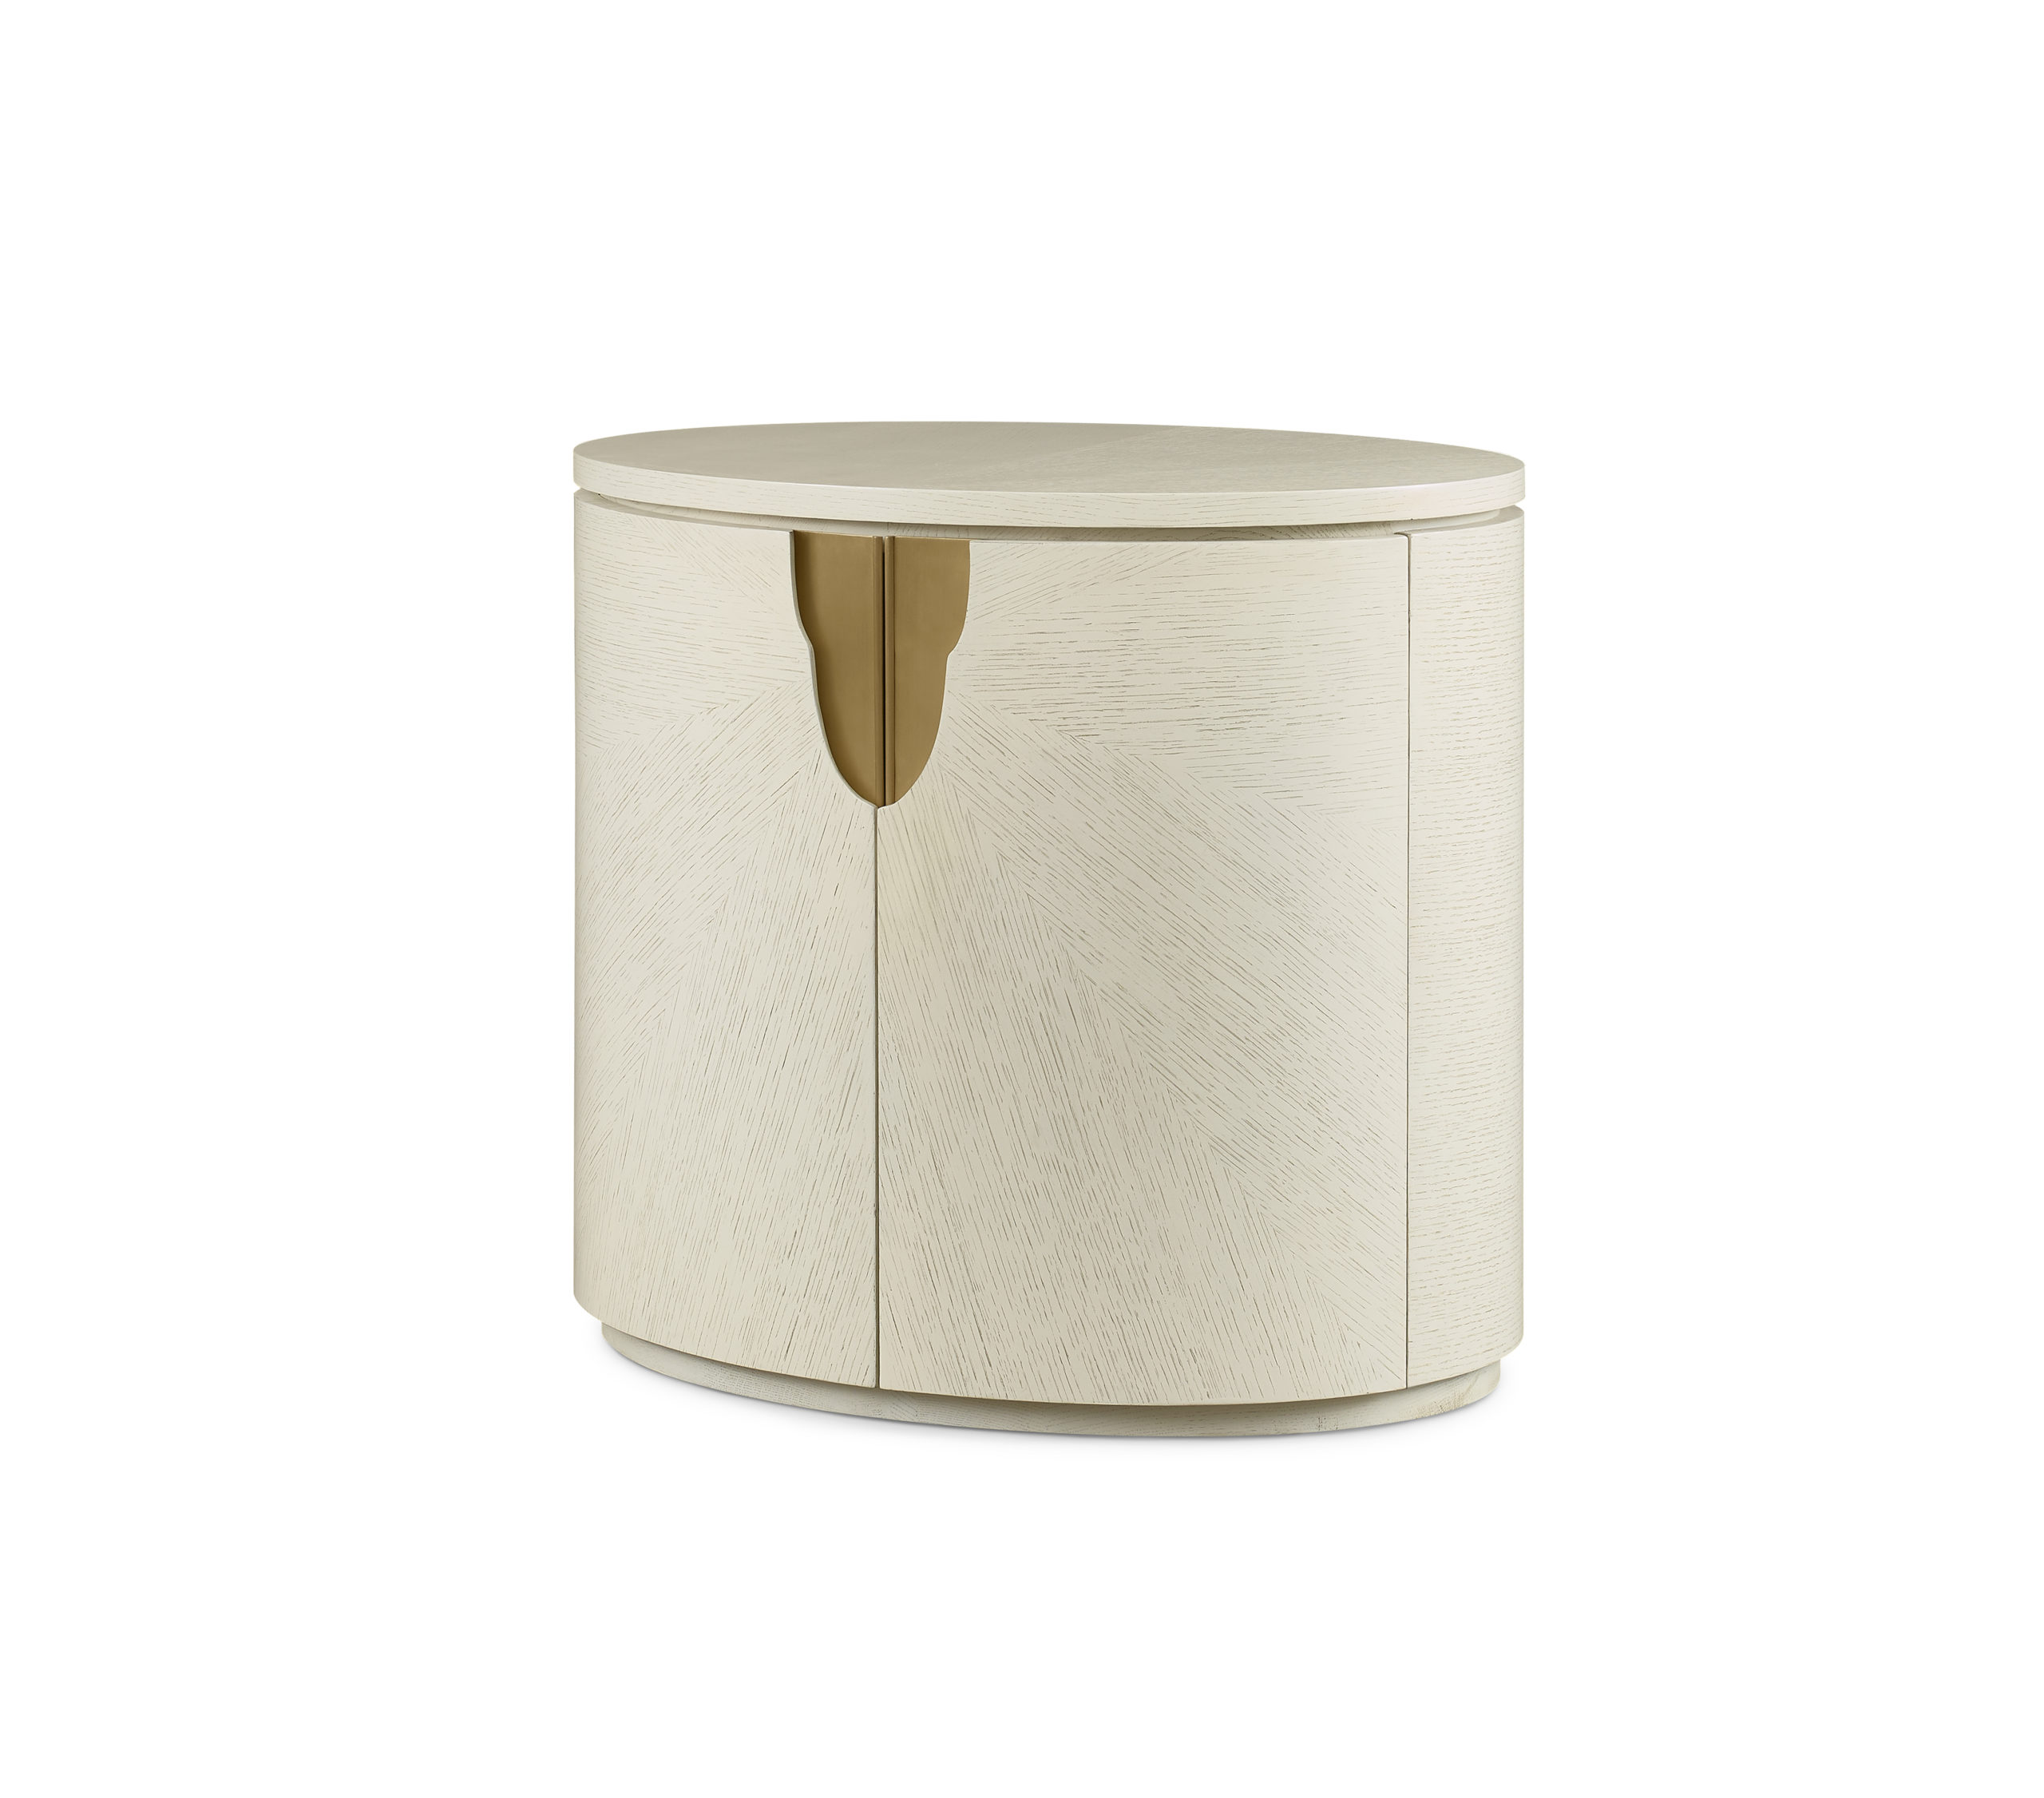 Baker_products_WNWN_dover_bedside_table_BAA3209_FRONT_3QRT-scaled-2